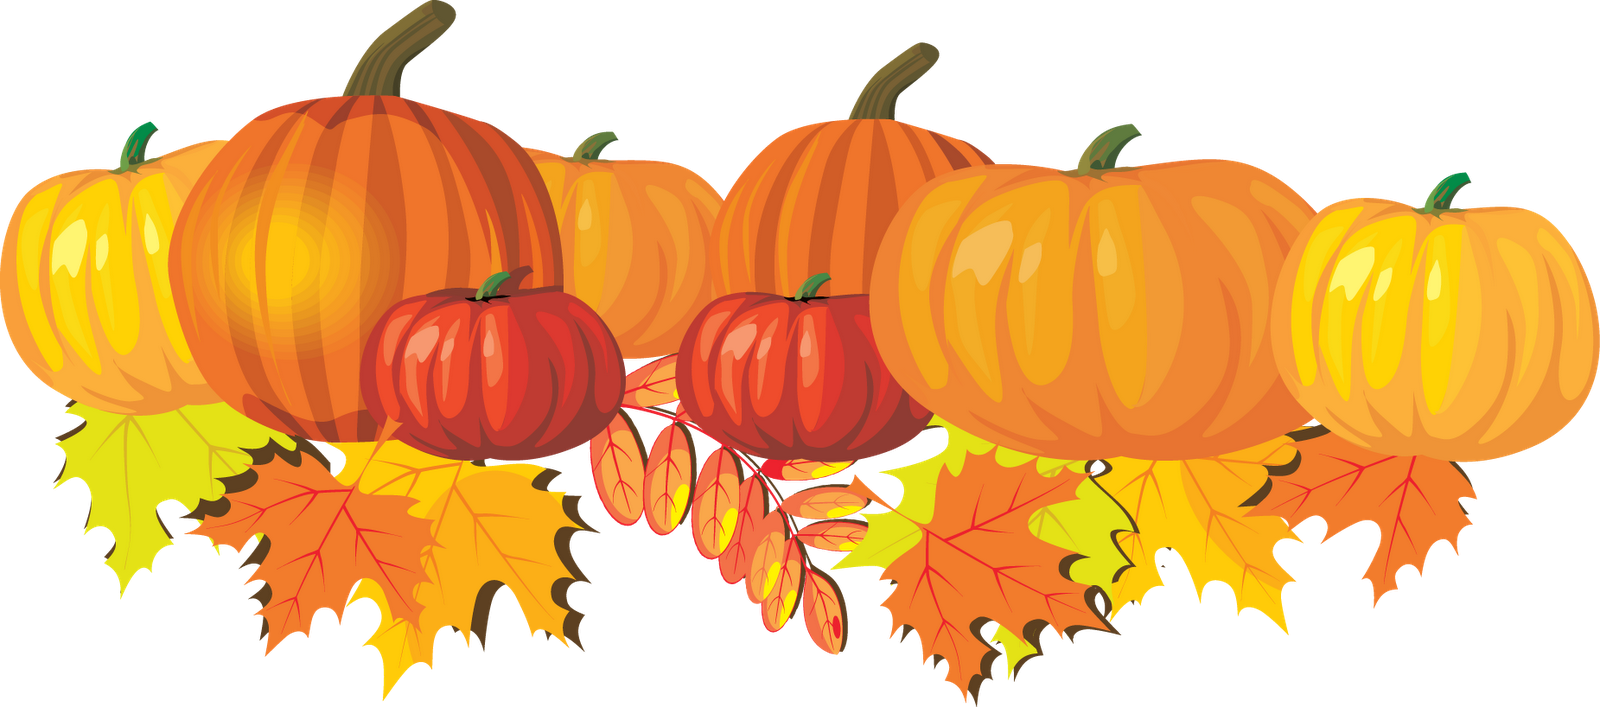 19 Fall Pumpkin Pictures Free Cliparts T-19 Fall Pumpkin Pictures Free Cliparts That You Can Download To You-16